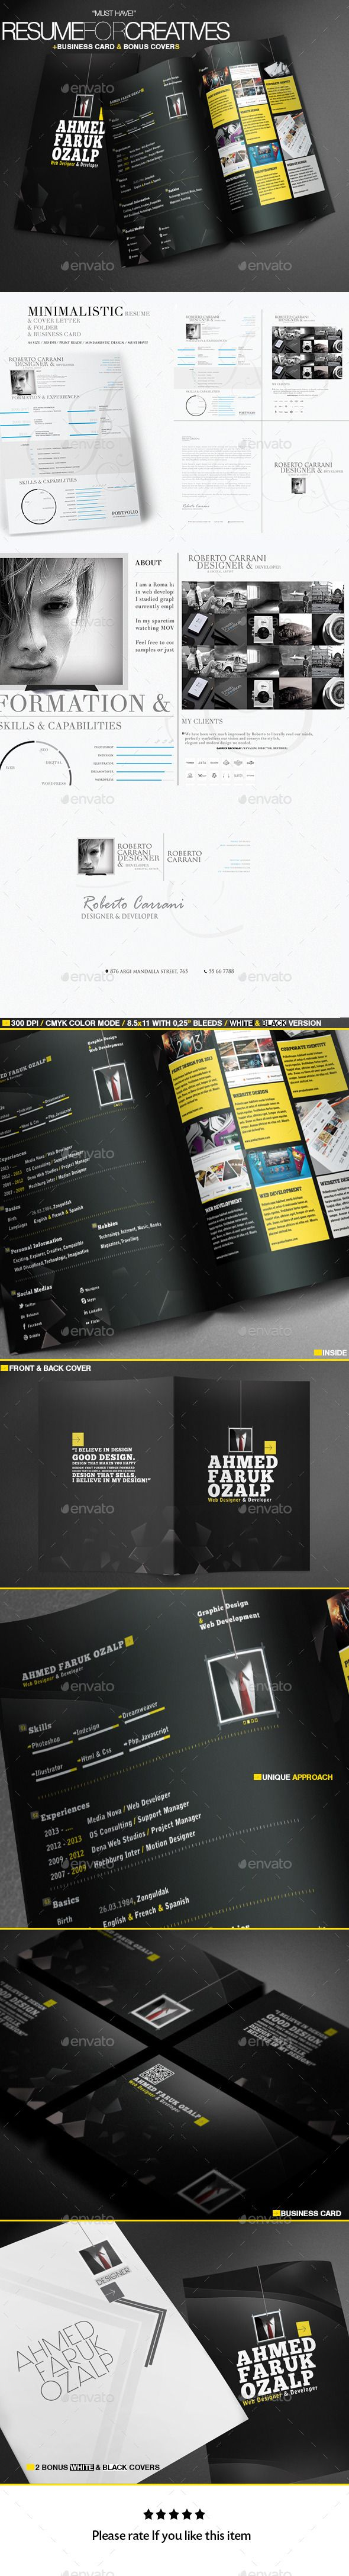 A Great Deal Creative Resume Templates 2in1